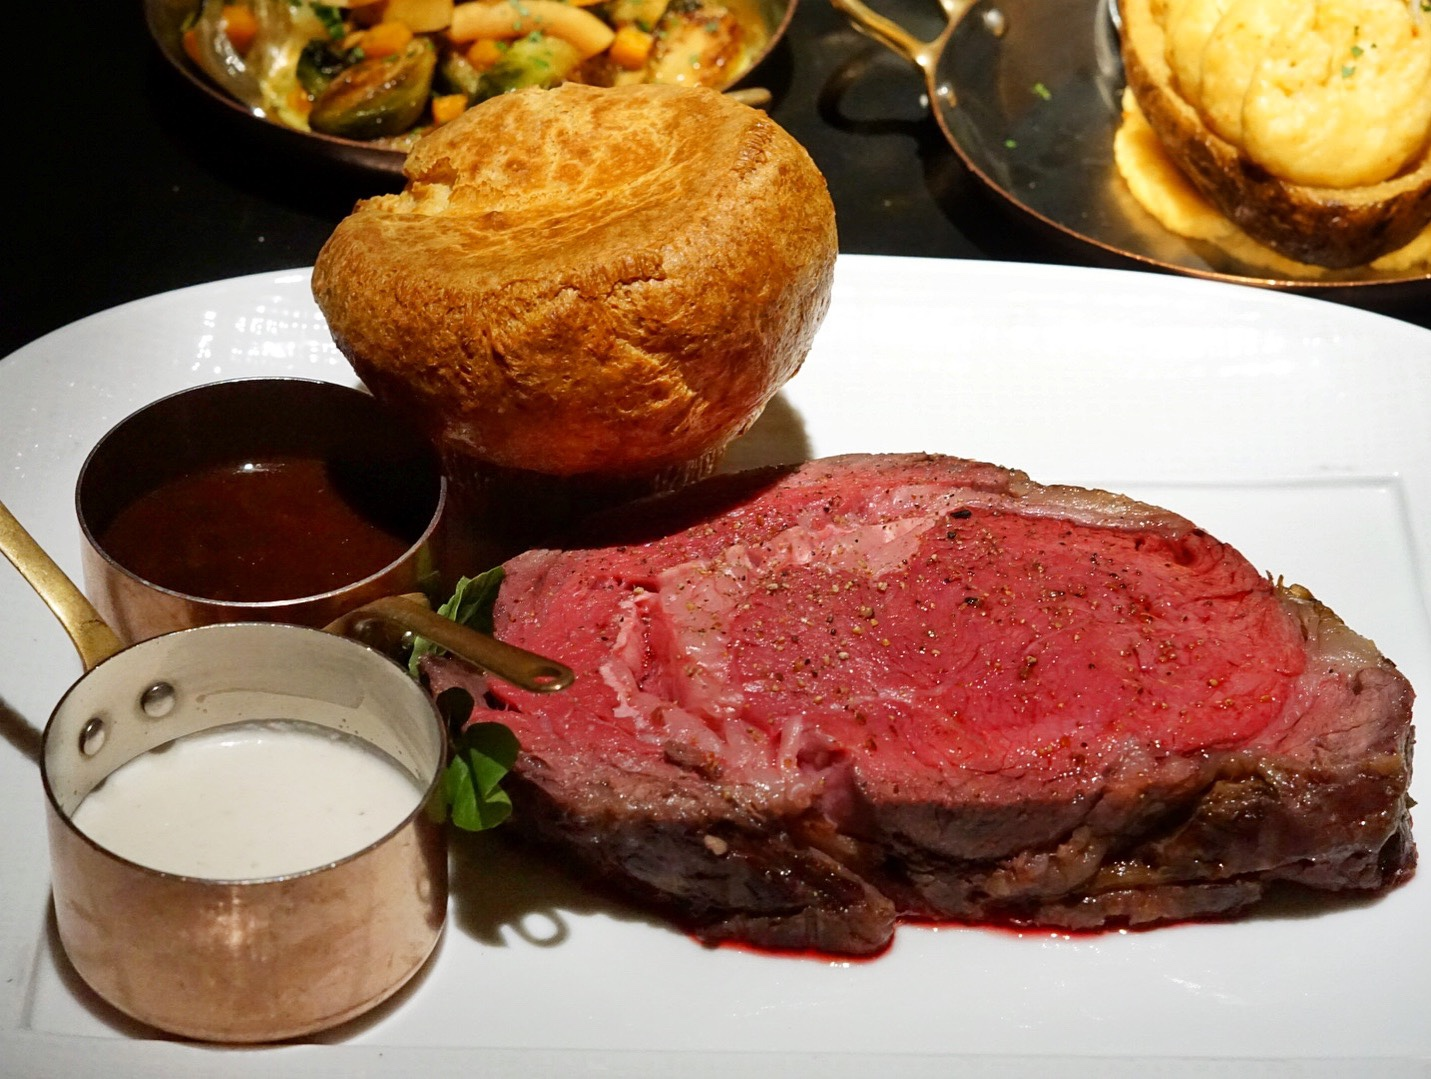 A hefty 12oz portion of Prime Rib (medium rare here) that you can enjoy nightly or on their Thursday night 'Prime Rib Night'. It is slow roasted and encrusted in salt, herbs and peppercorns and served with Yorkshire pudding, horseradish cream and a traditional au jus.